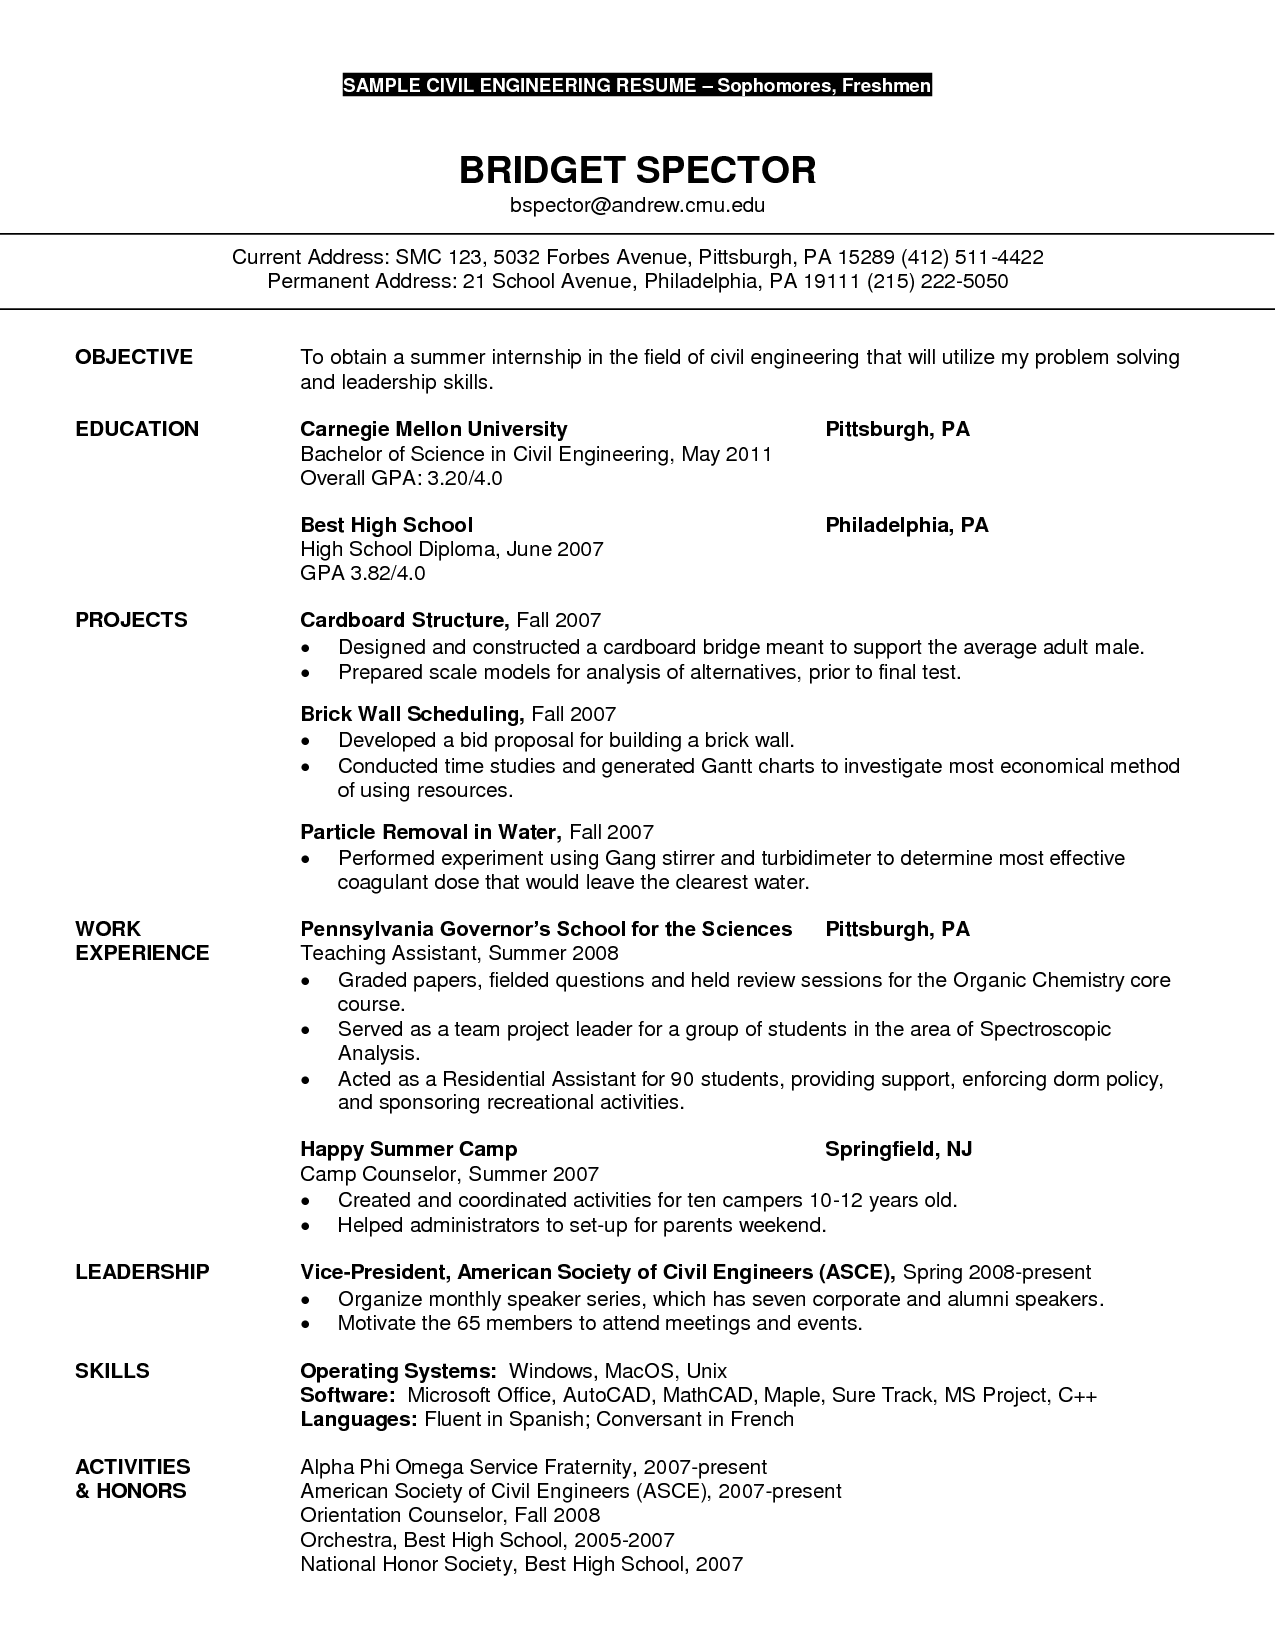 Civil engineer resume sample httpresumecareerfocivil civil engineer resume sample httpresumecareerfocivil civil engineering jobsengineering yelopaper Choice Image